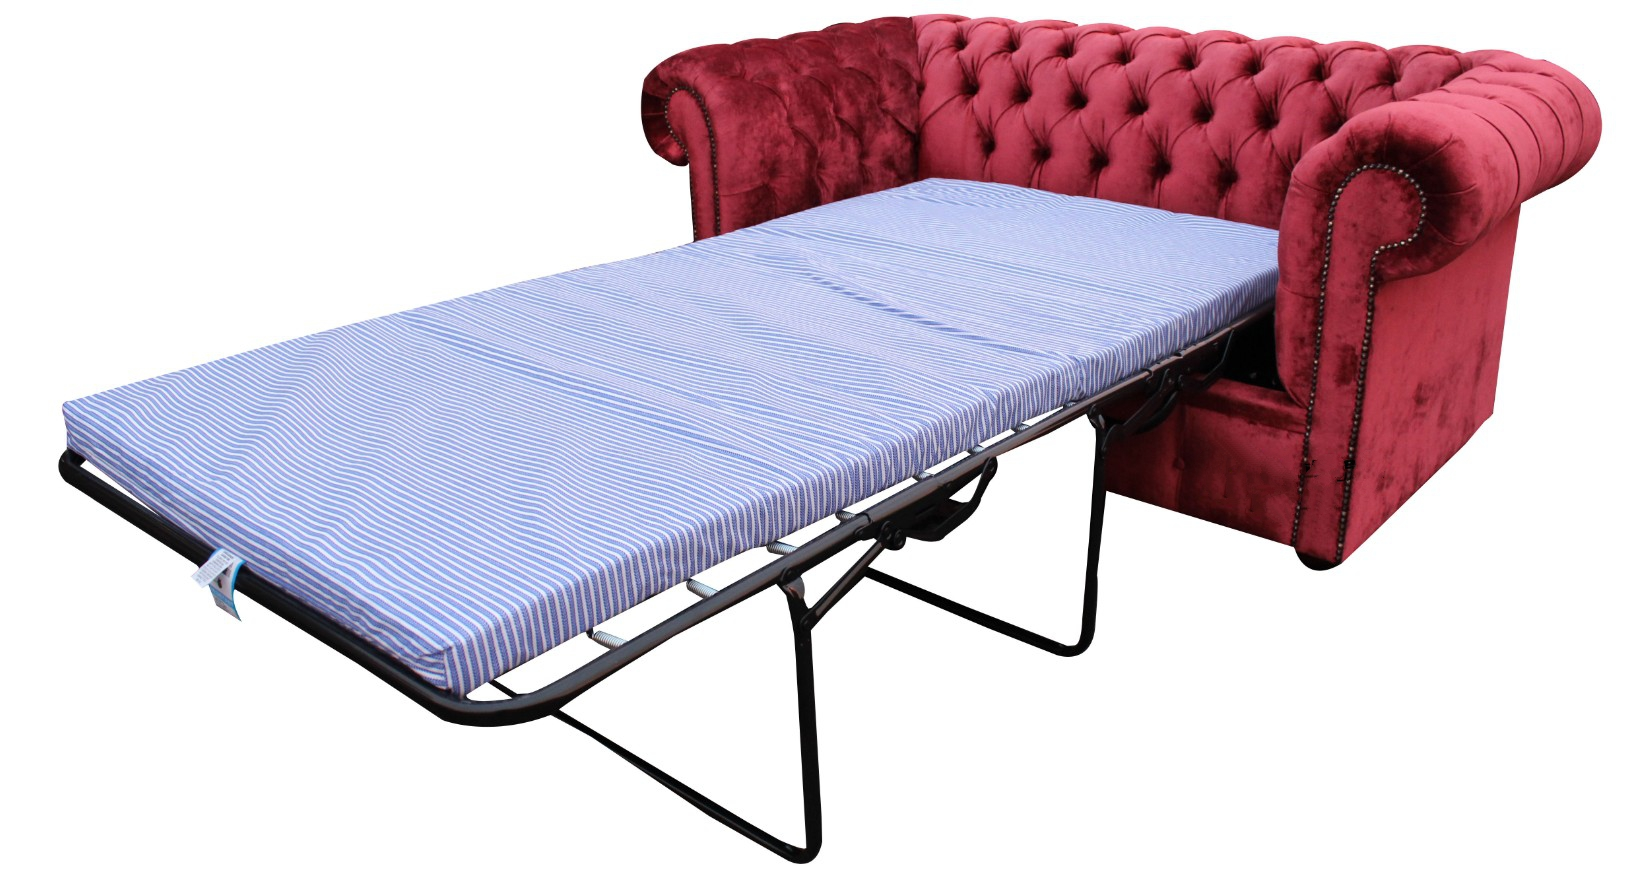 buy ruby red velvet fabric chesterfield sofa bed online. Black Bedroom Furniture Sets. Home Design Ideas